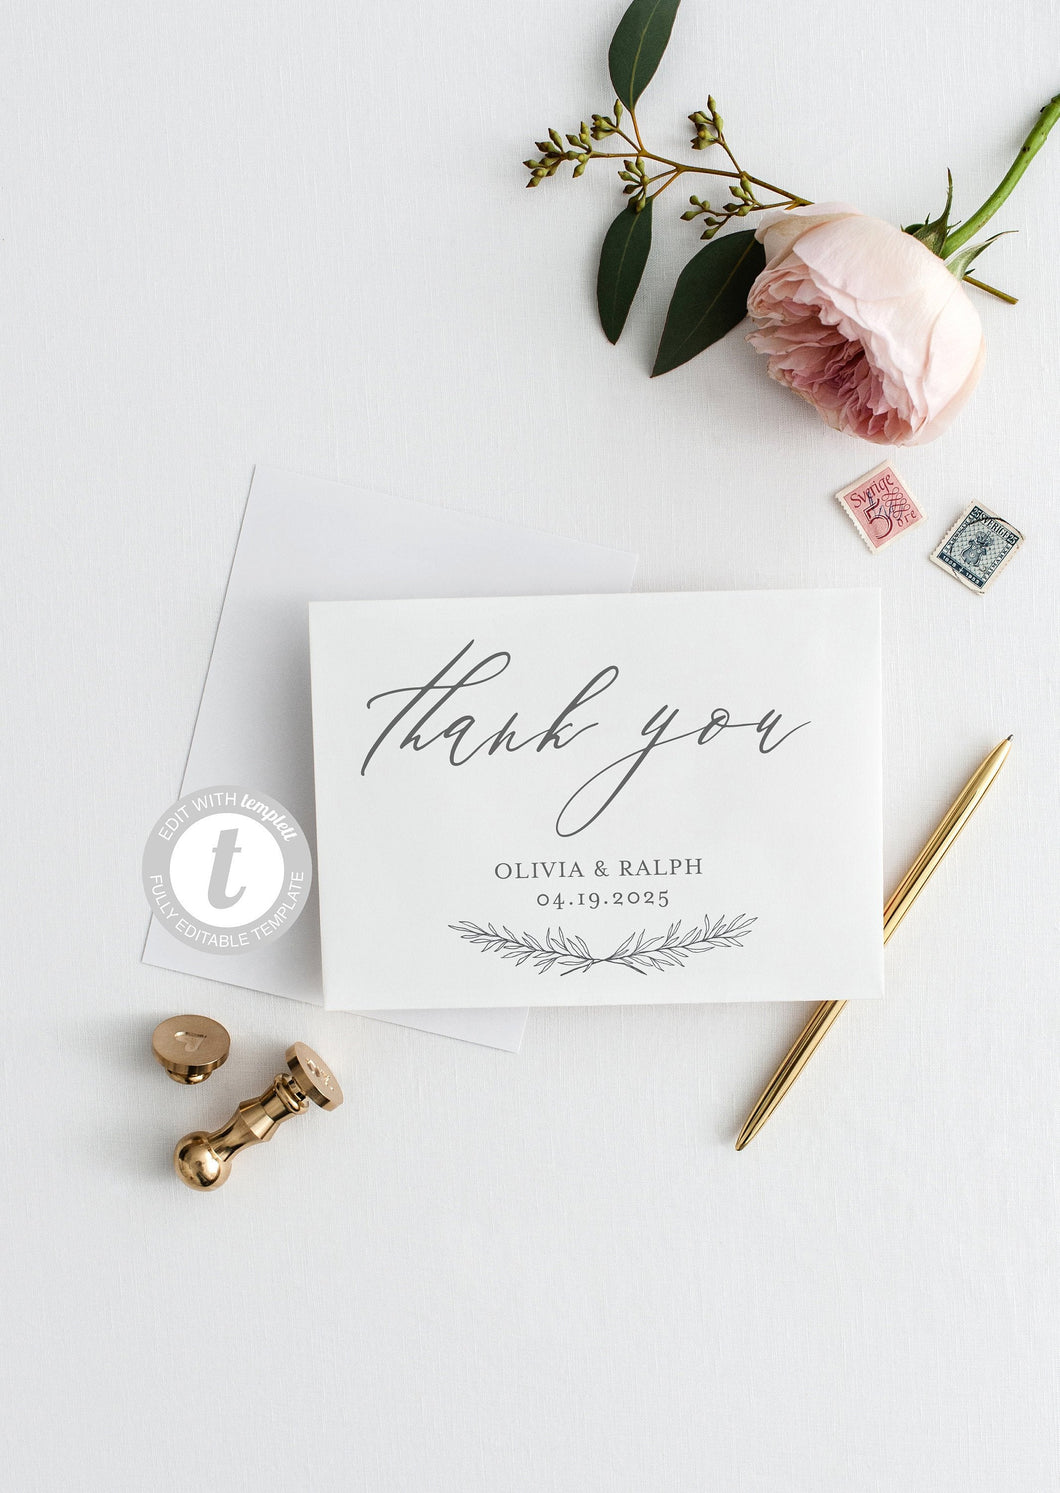 Elegant Wedding Thank You Card, Instant Download, Thank you Cards, Printable Thank You, Wedding Cards, Calligraphy, Rustic  - Olivia